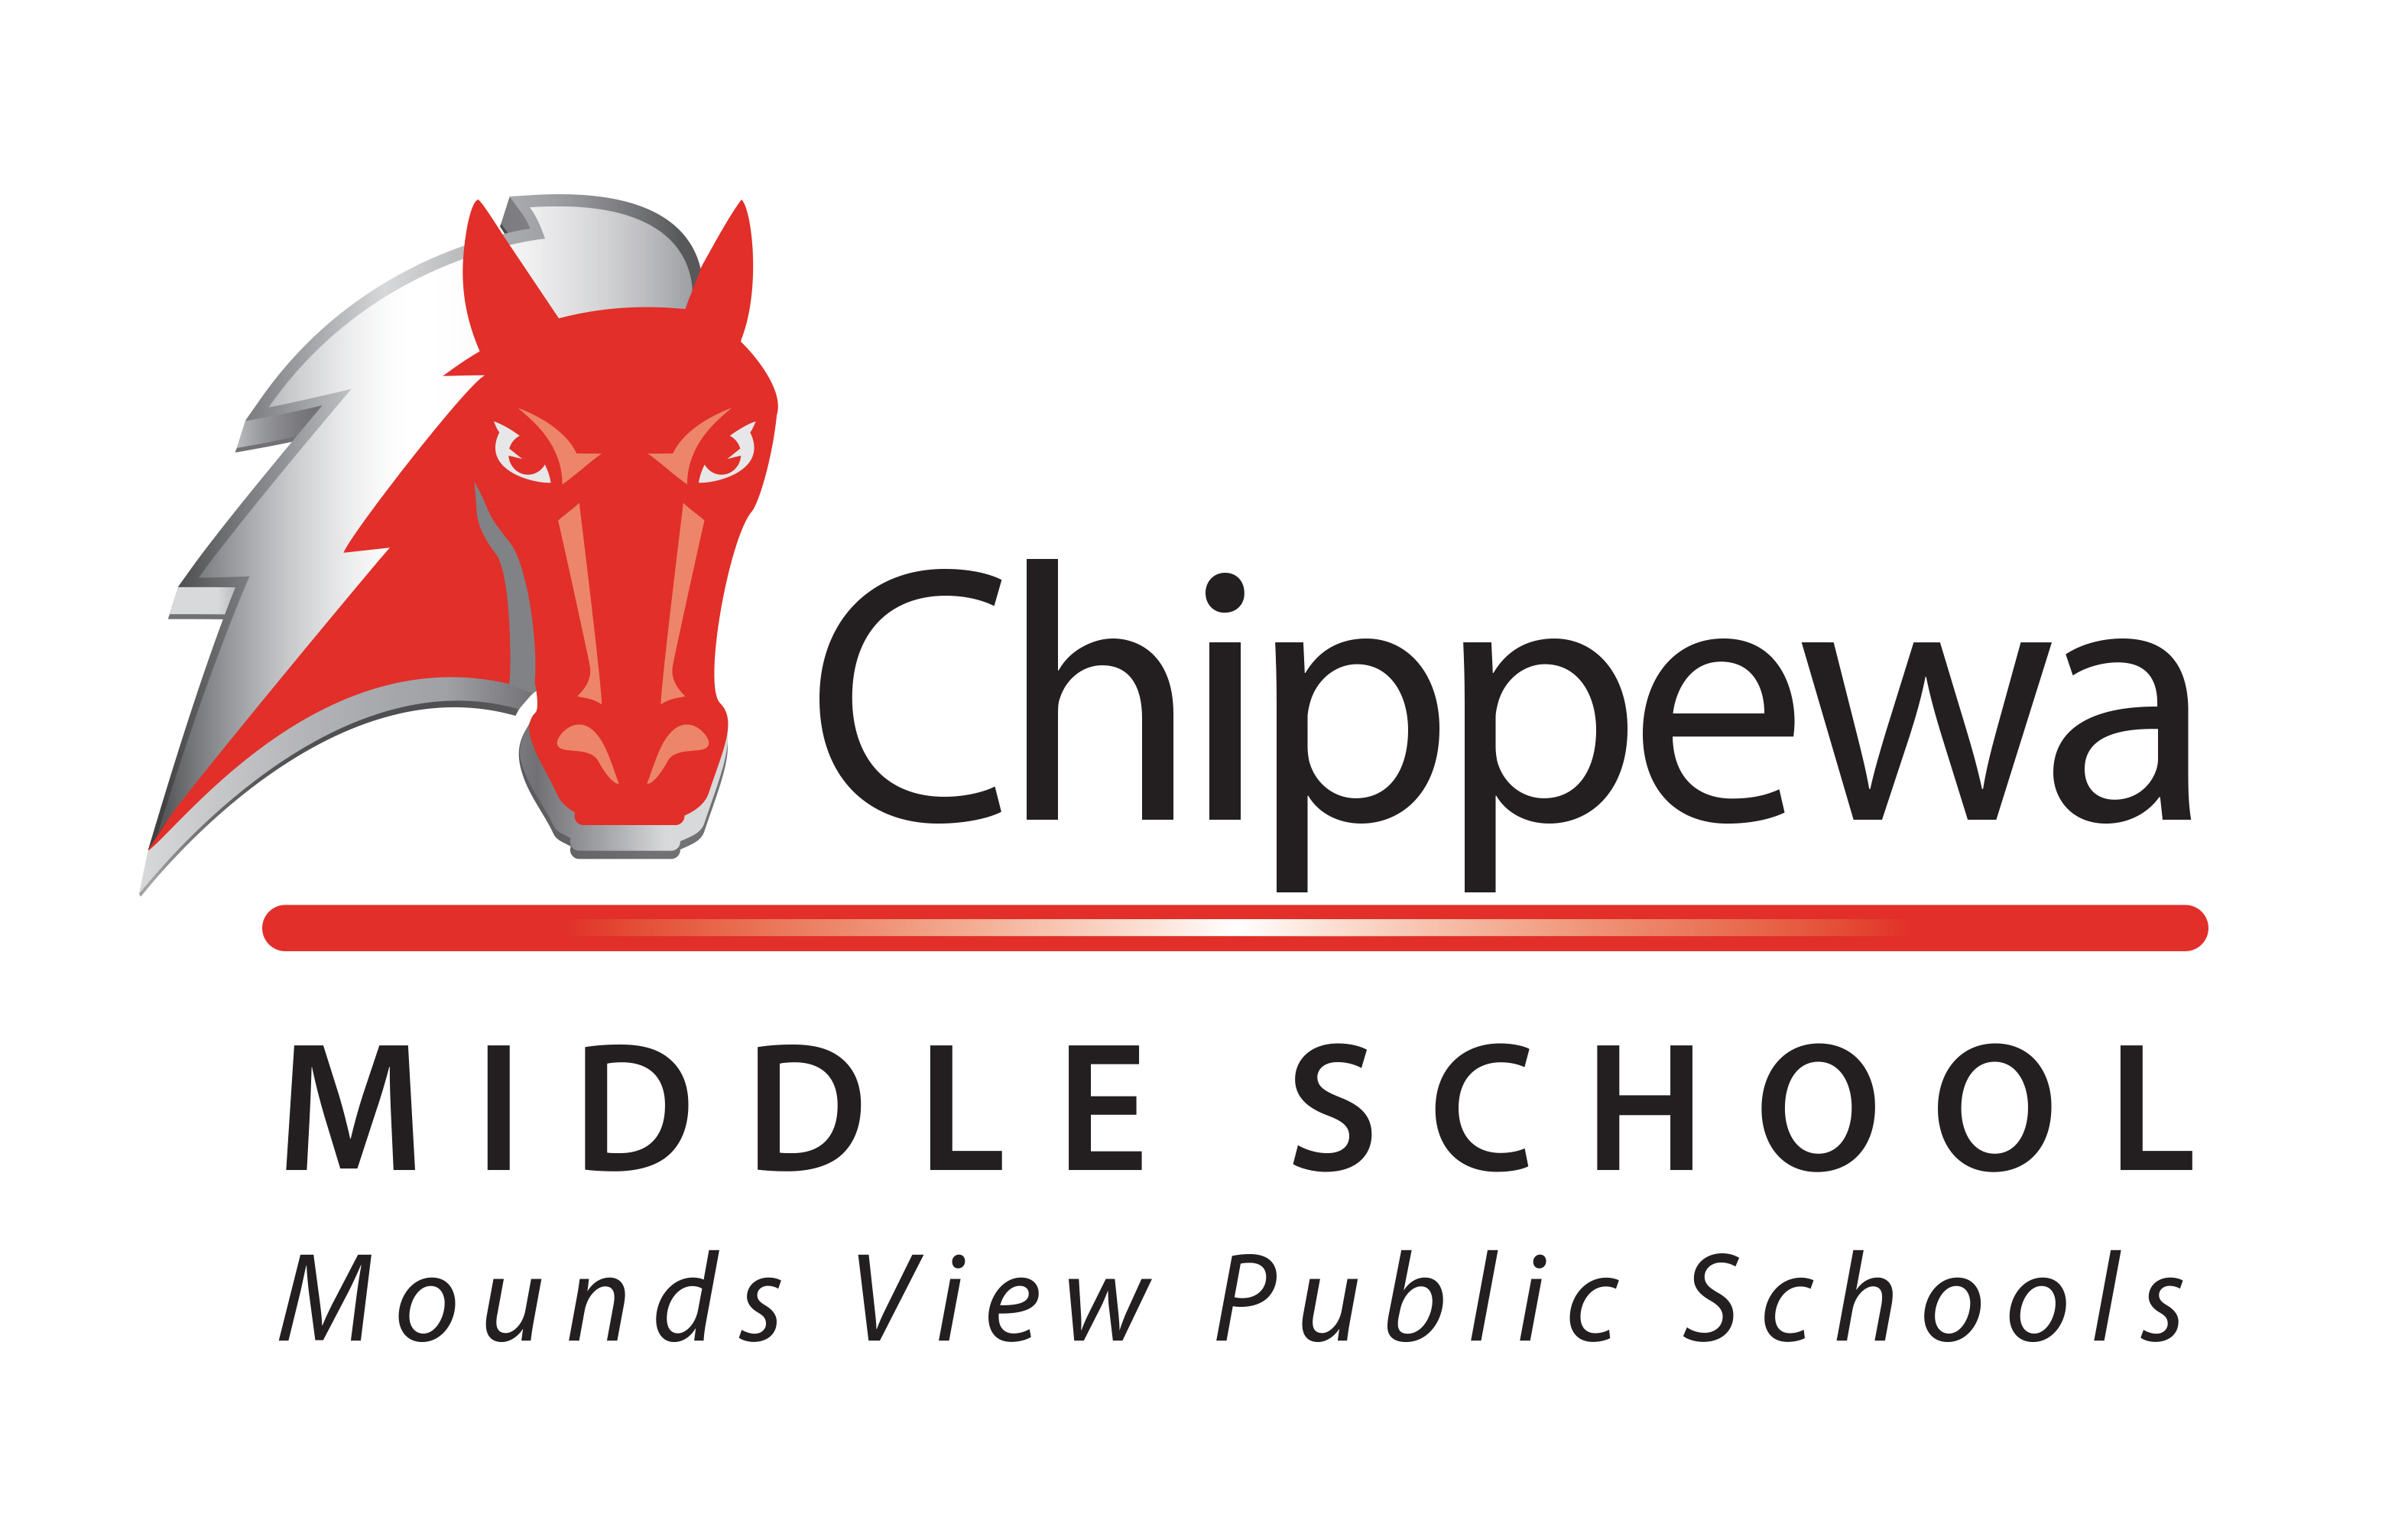 Chippewa Middle School